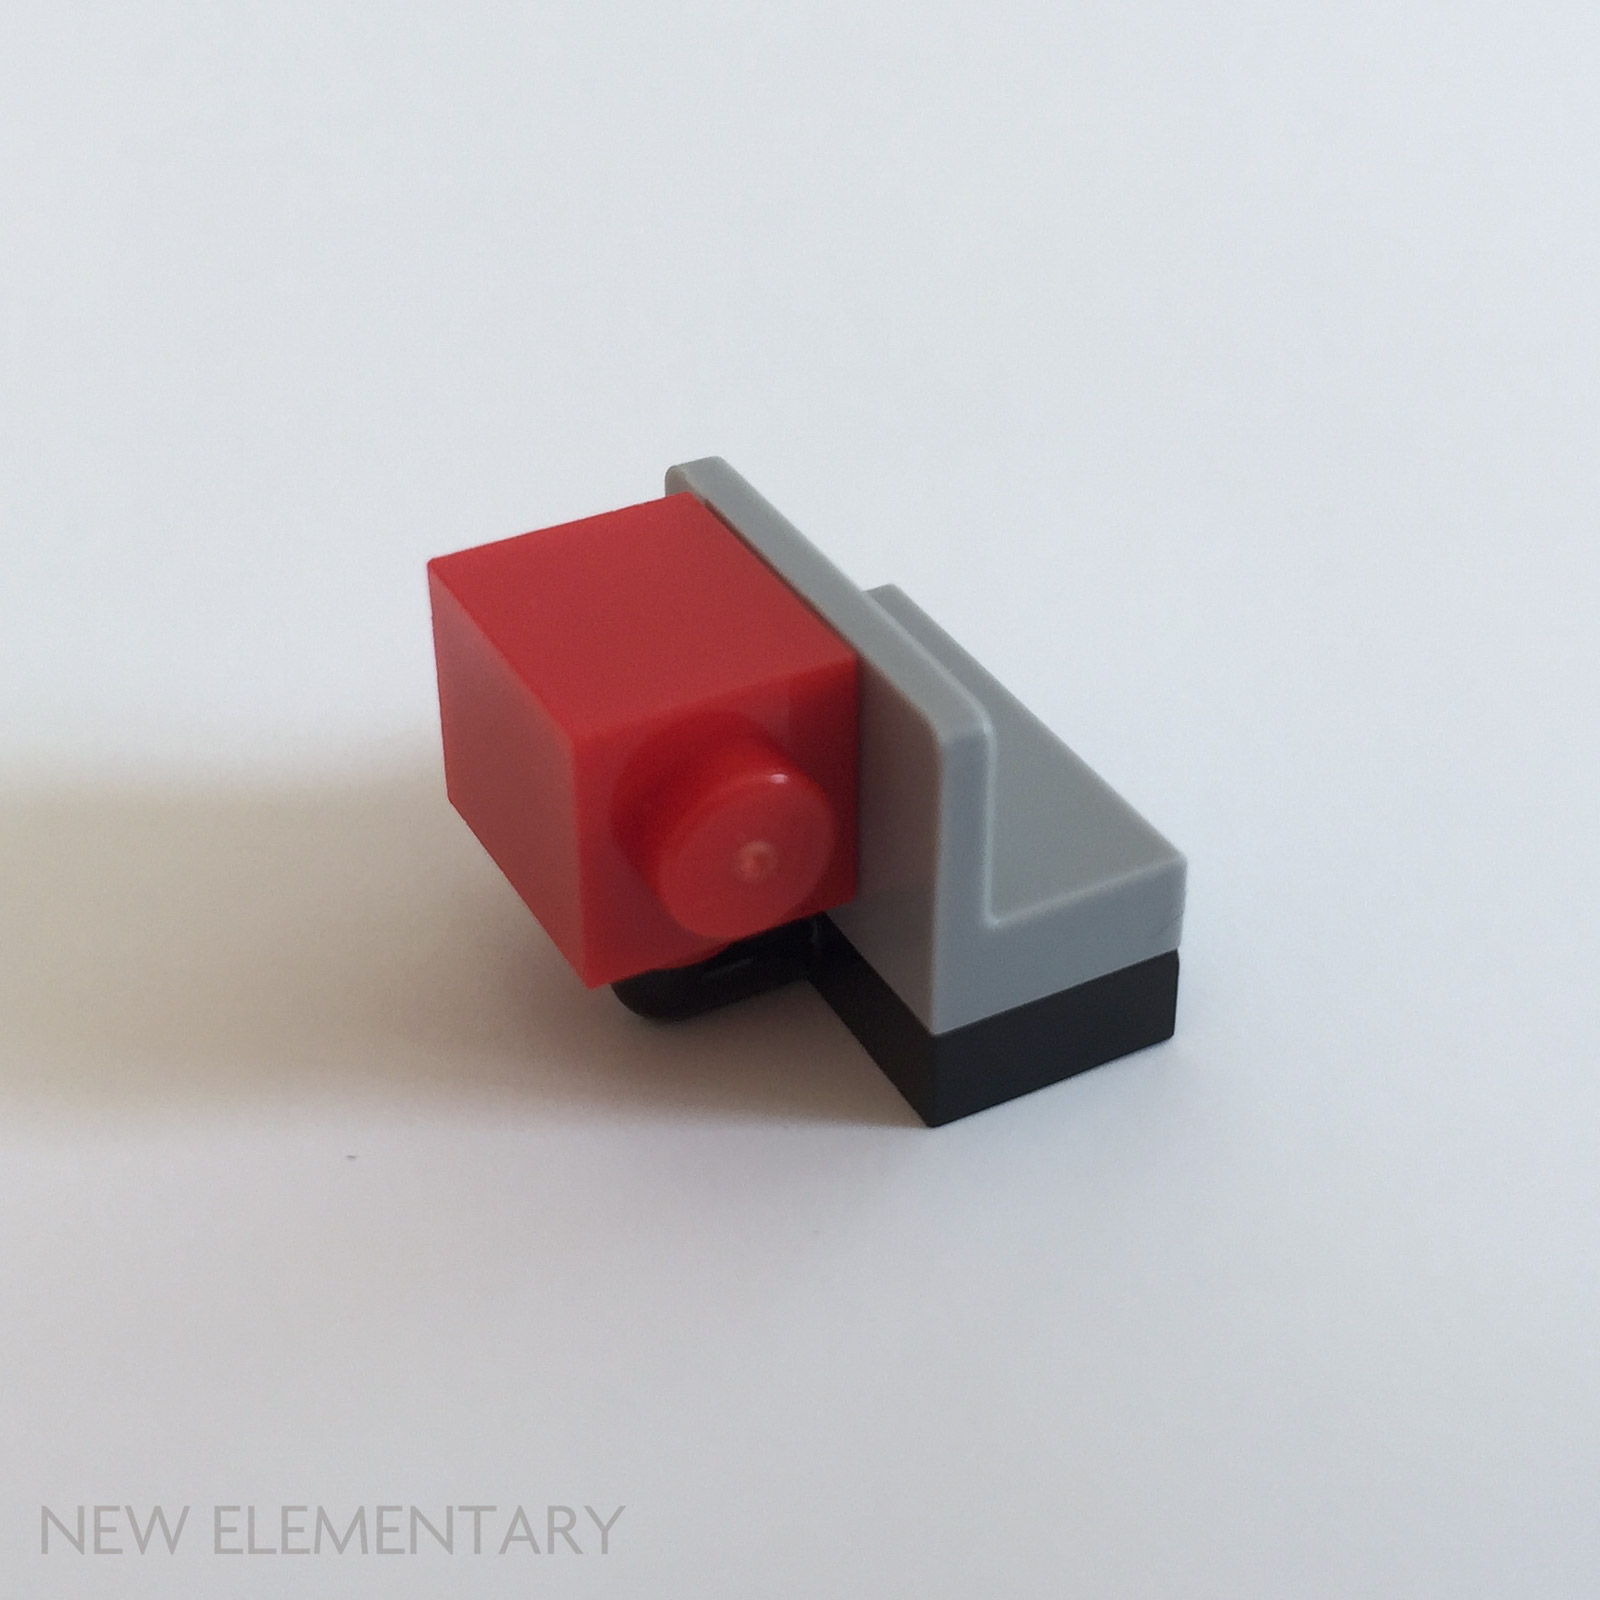 LEGO Lot of 4 Red 1x2 Bricks with Studs on Both Sides